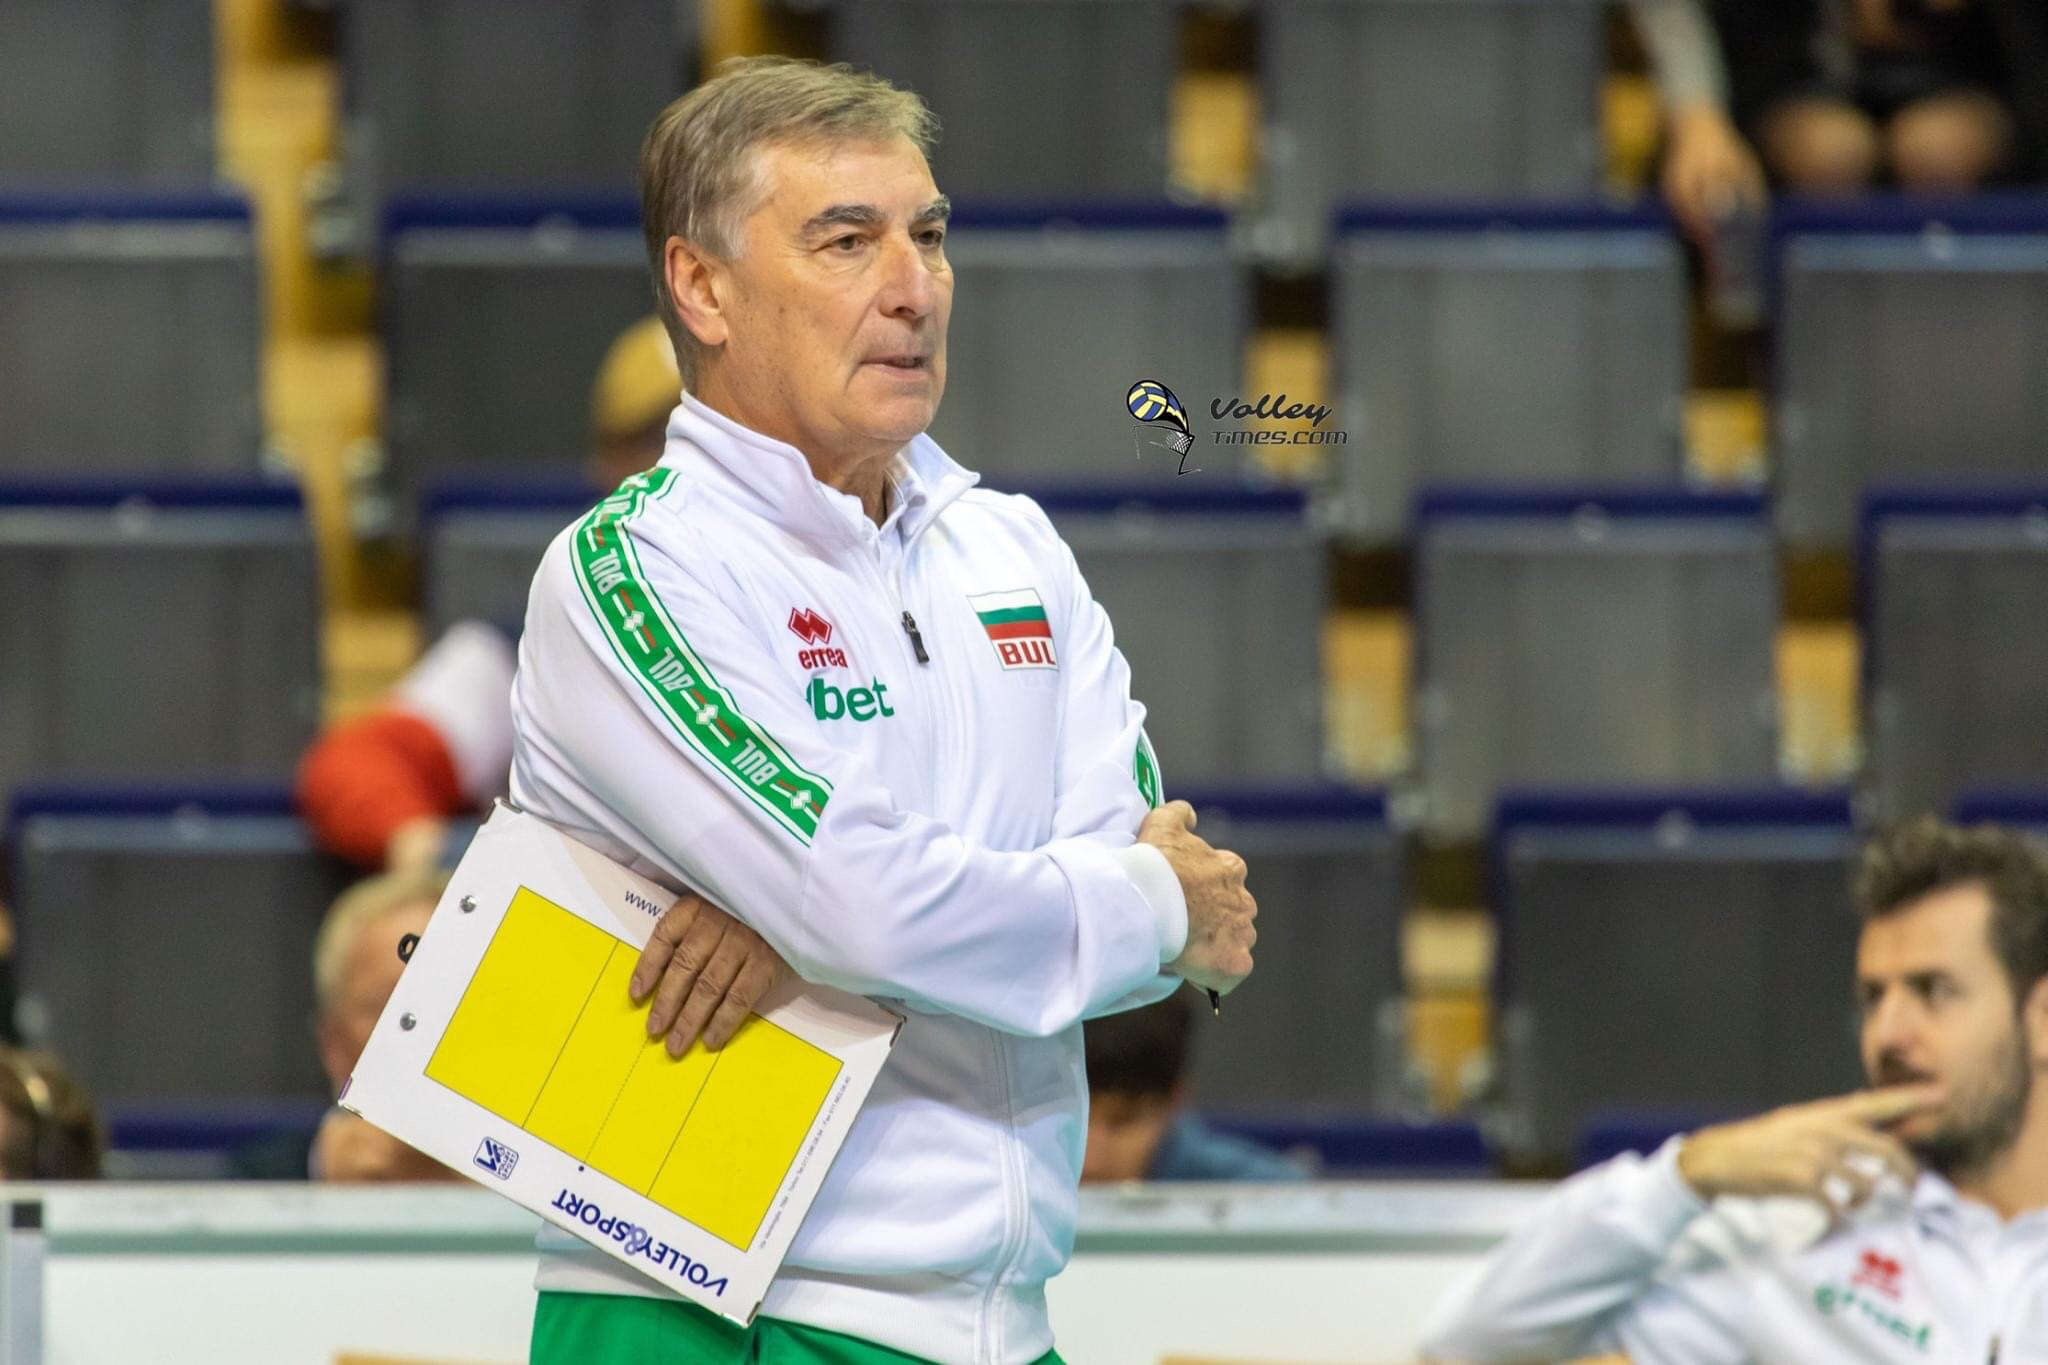 Bulgaria: Prandi remains at the helm of Bulgaria